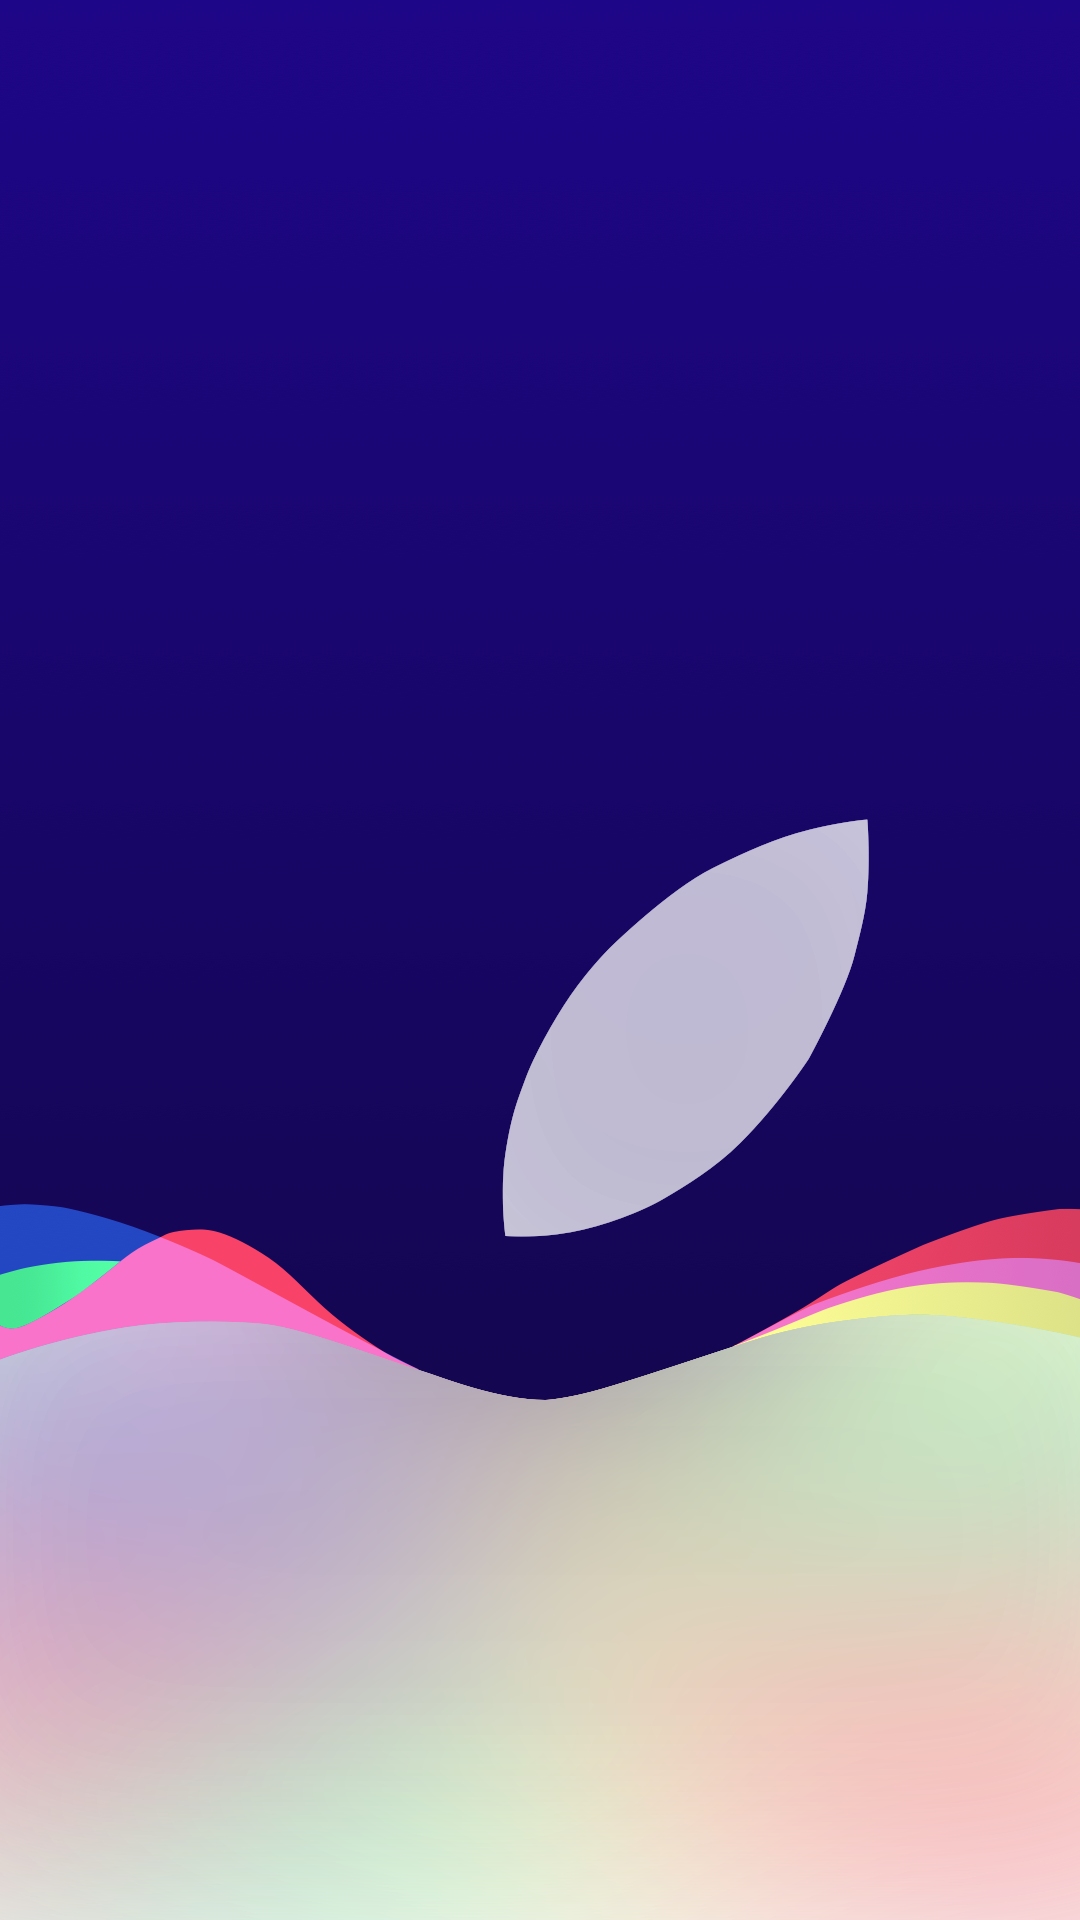 Apple-Event-September-9-Wallpaper-stijn_d3sign-opacity-full iPhone